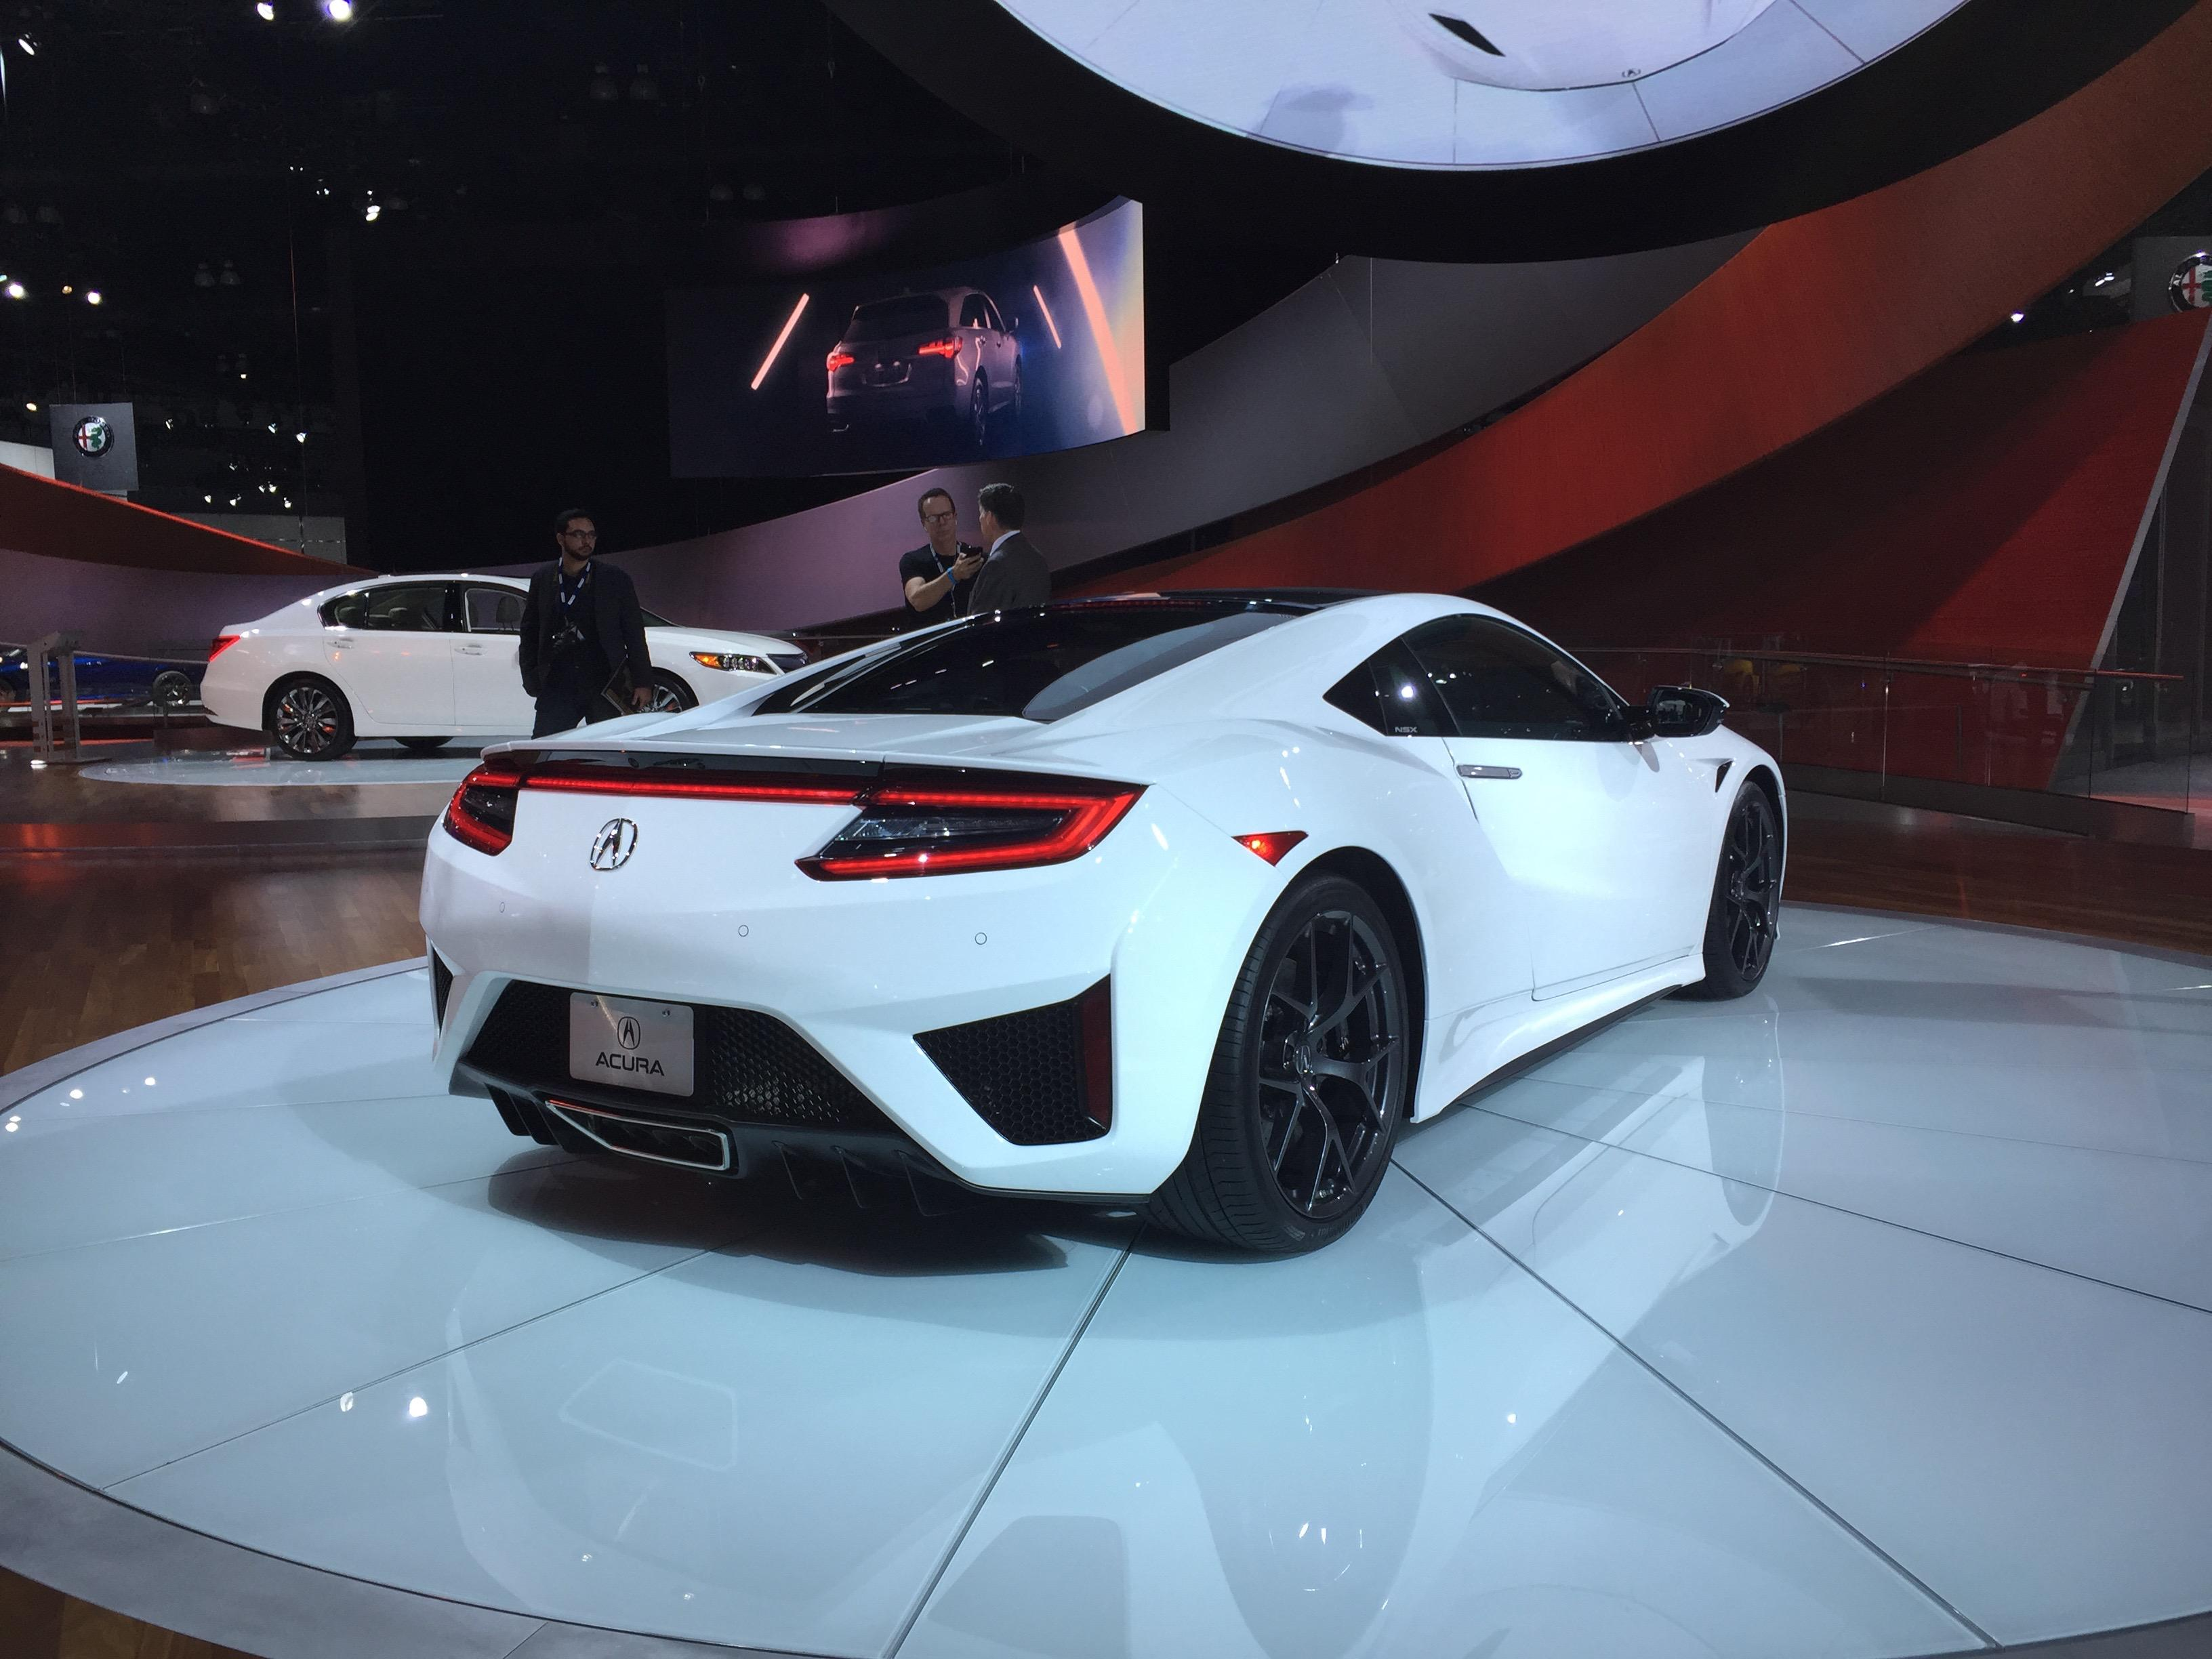 real commercial portfolio branded car angeles los img acura content bosses jz rdx border